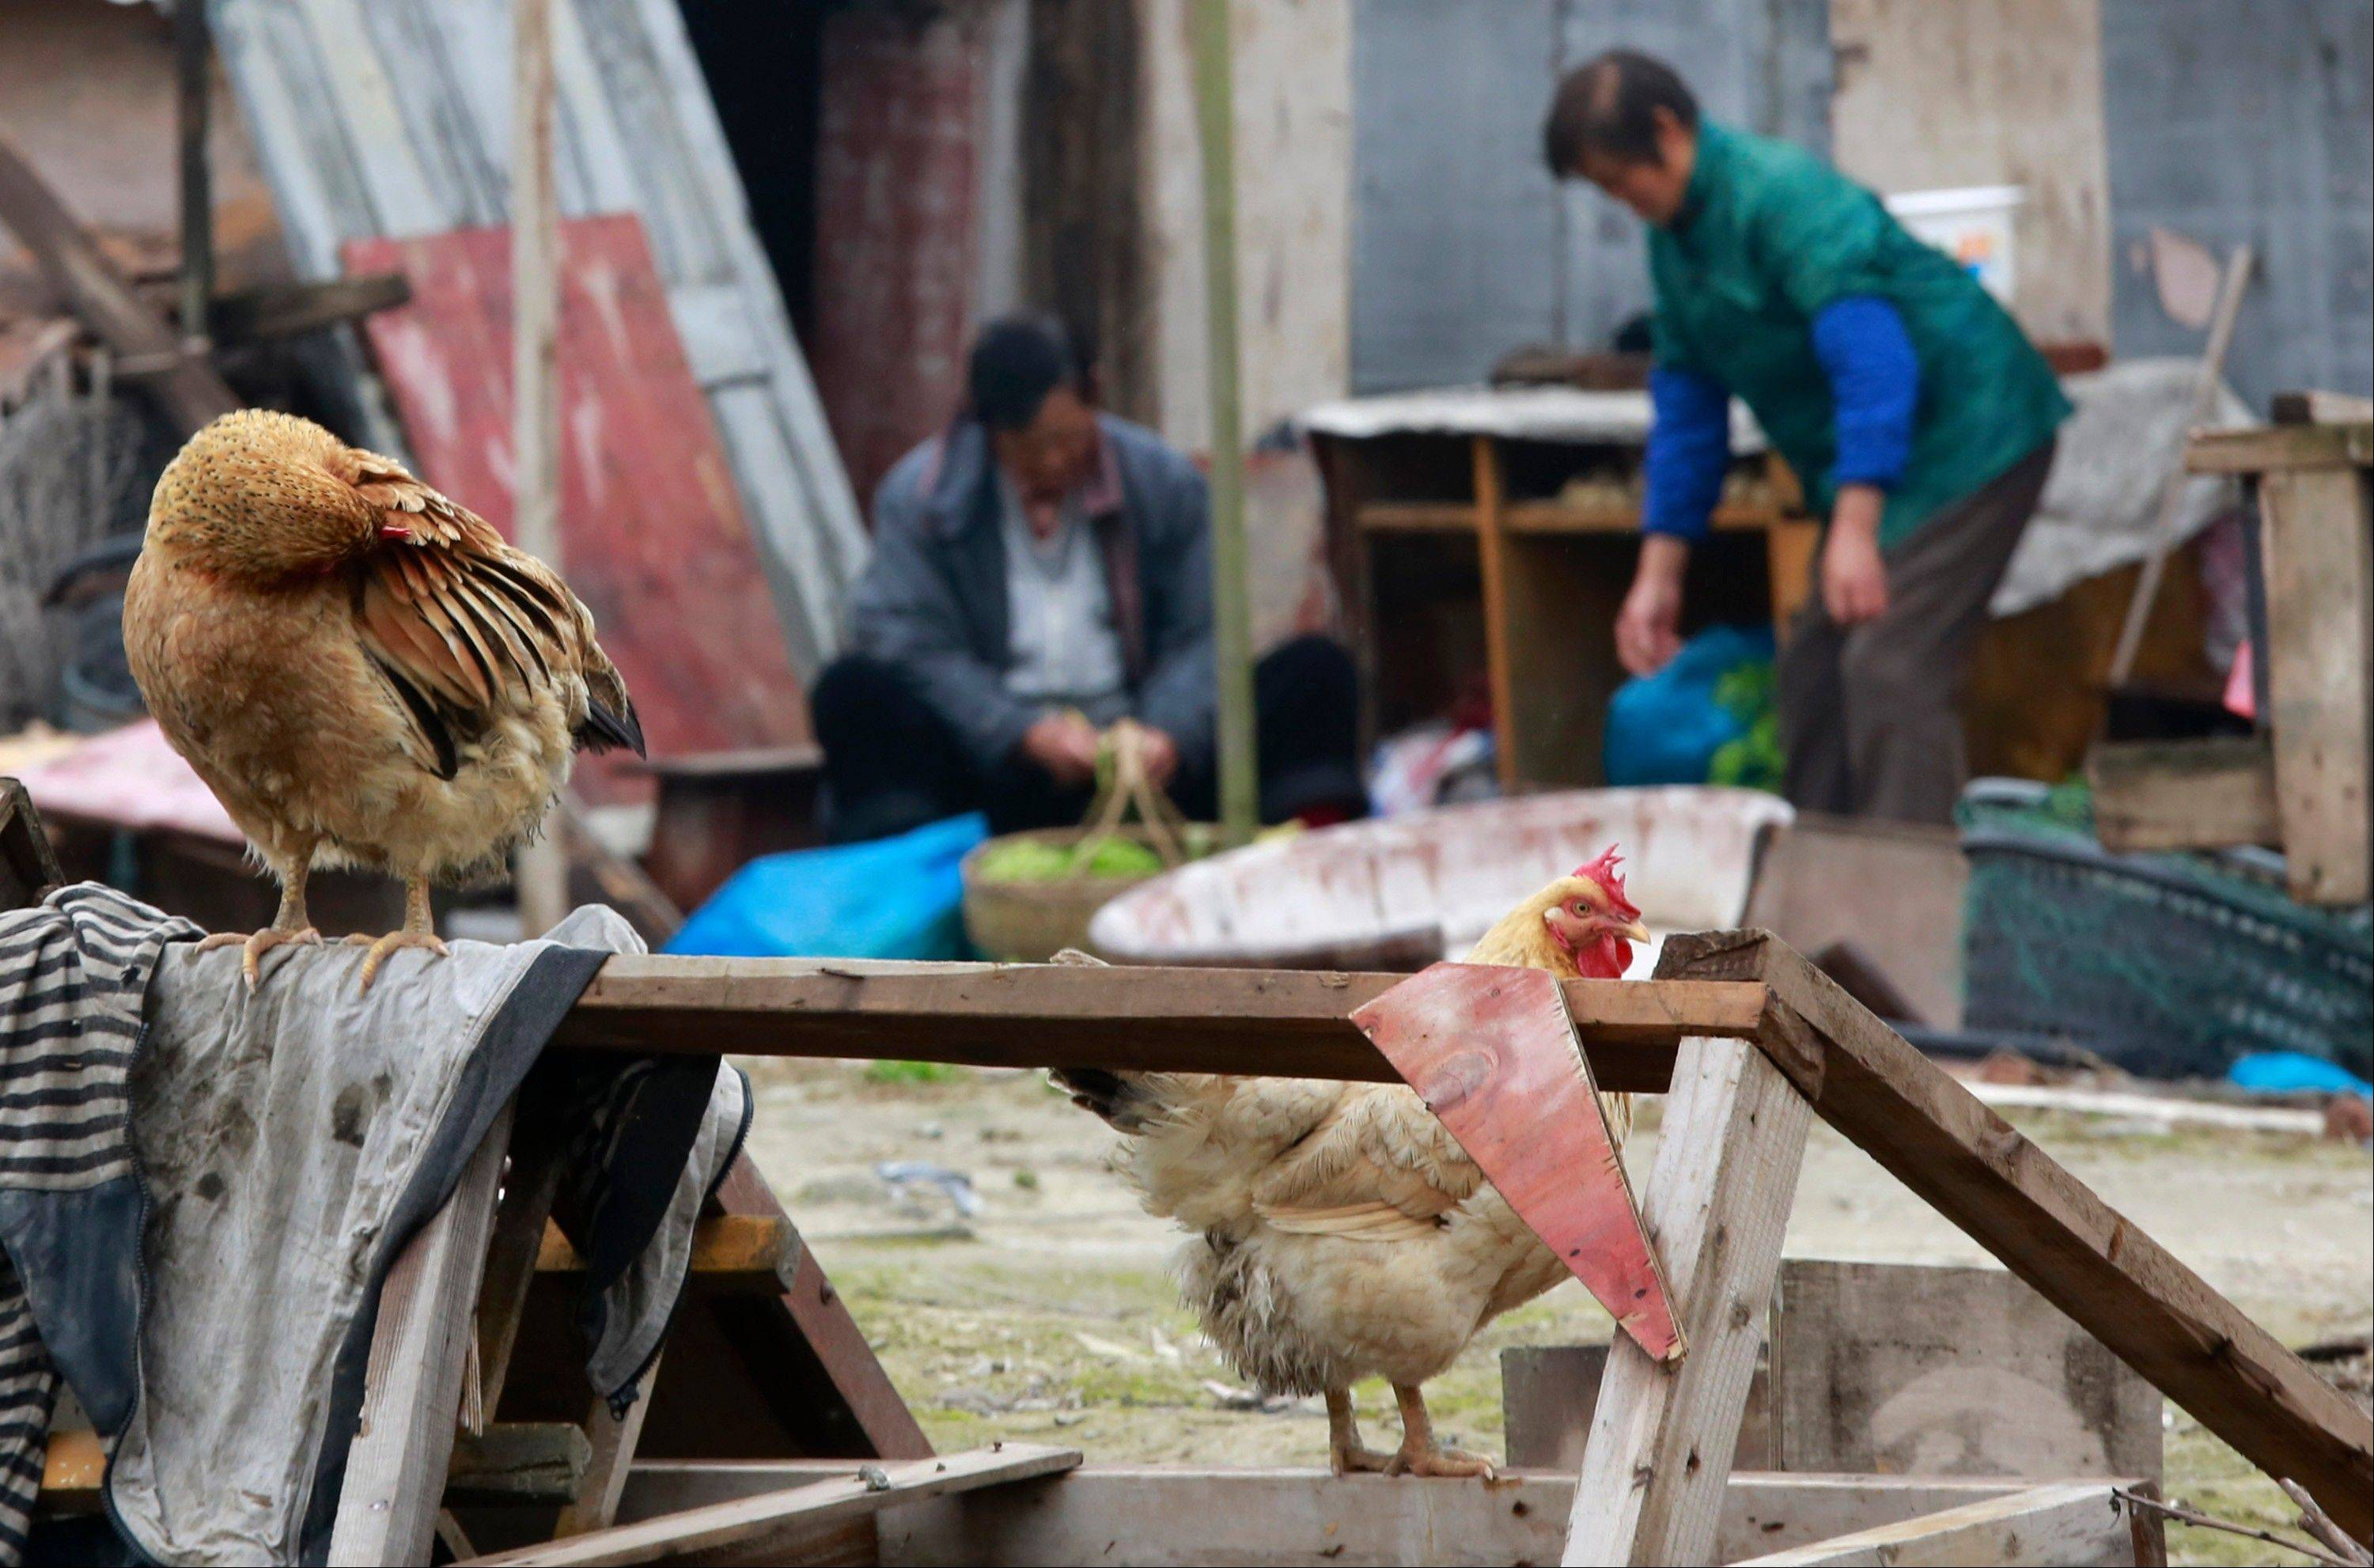 Free-range chickens are seen in Shanghai, China, on Friday, April 5, 2013. China announced a sixth death from the new bird flu H7N9 strain Friday, while authorities in Shanghai halted the sale of live fowl and slaughtered all poultry at a market where the virus was detected in pigeons being sold for meat. The first cases were announced Sunday.